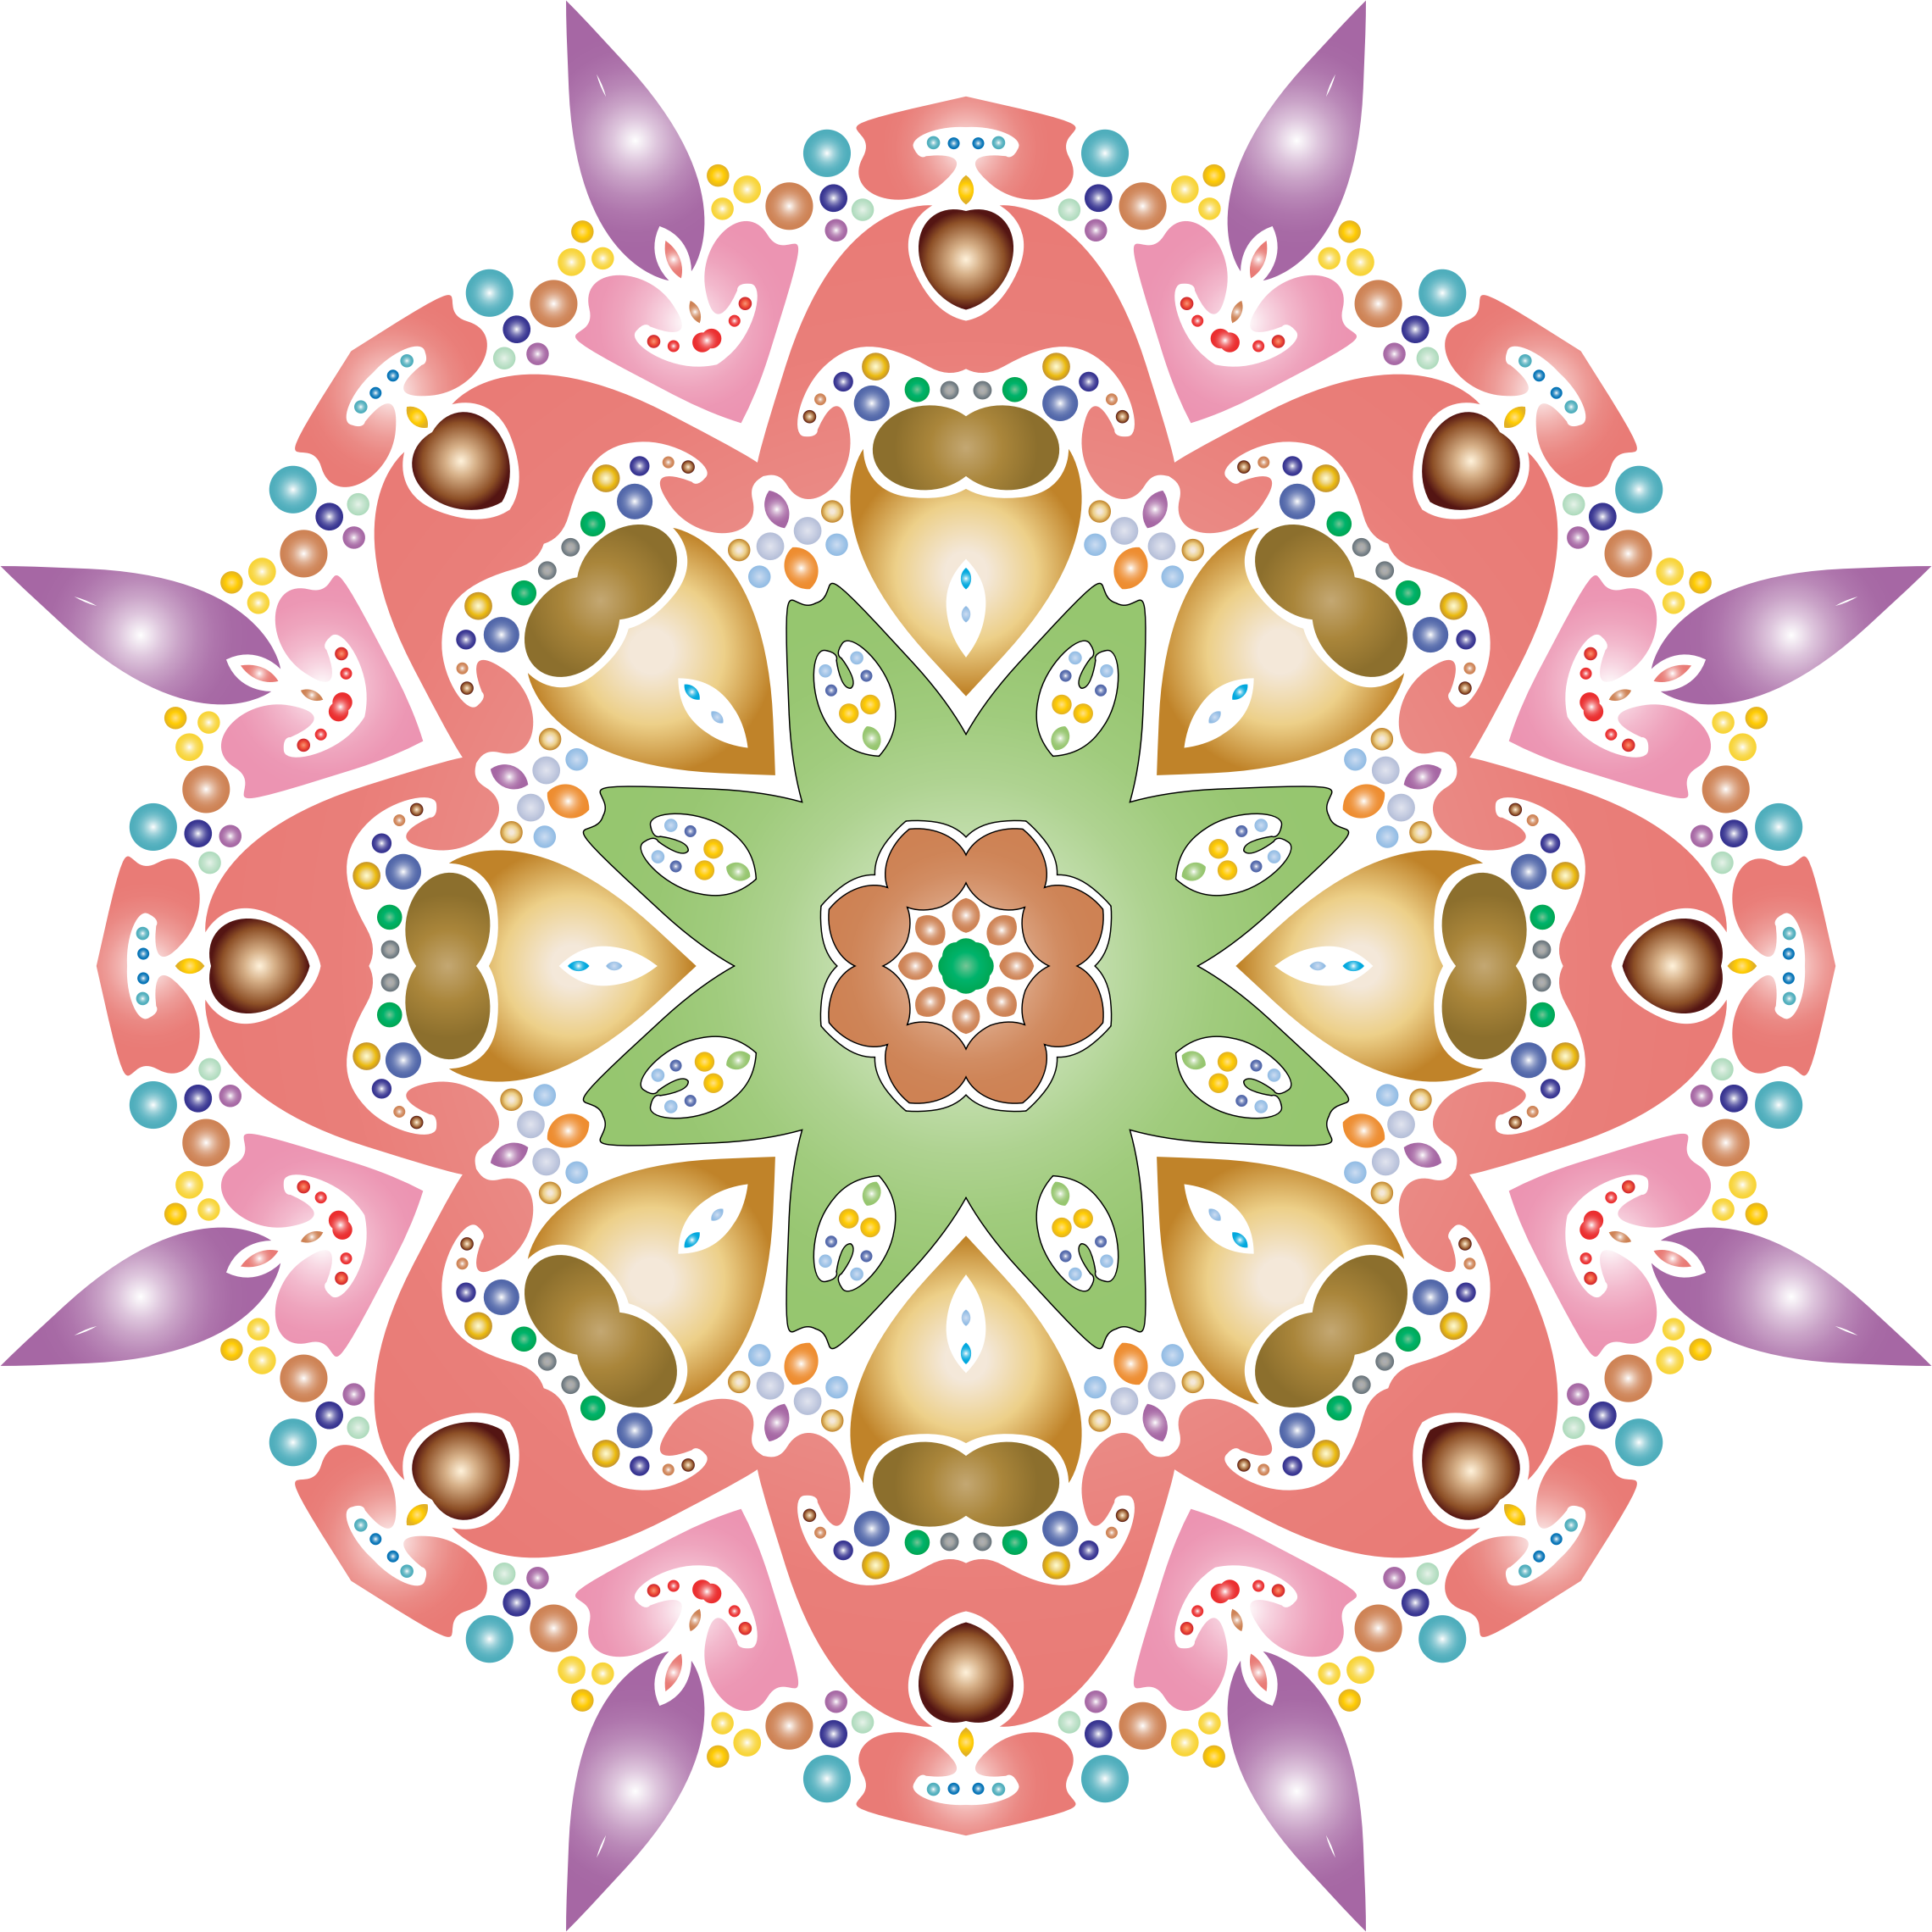 Hexagonal Tessellation Design 8 by GDJ